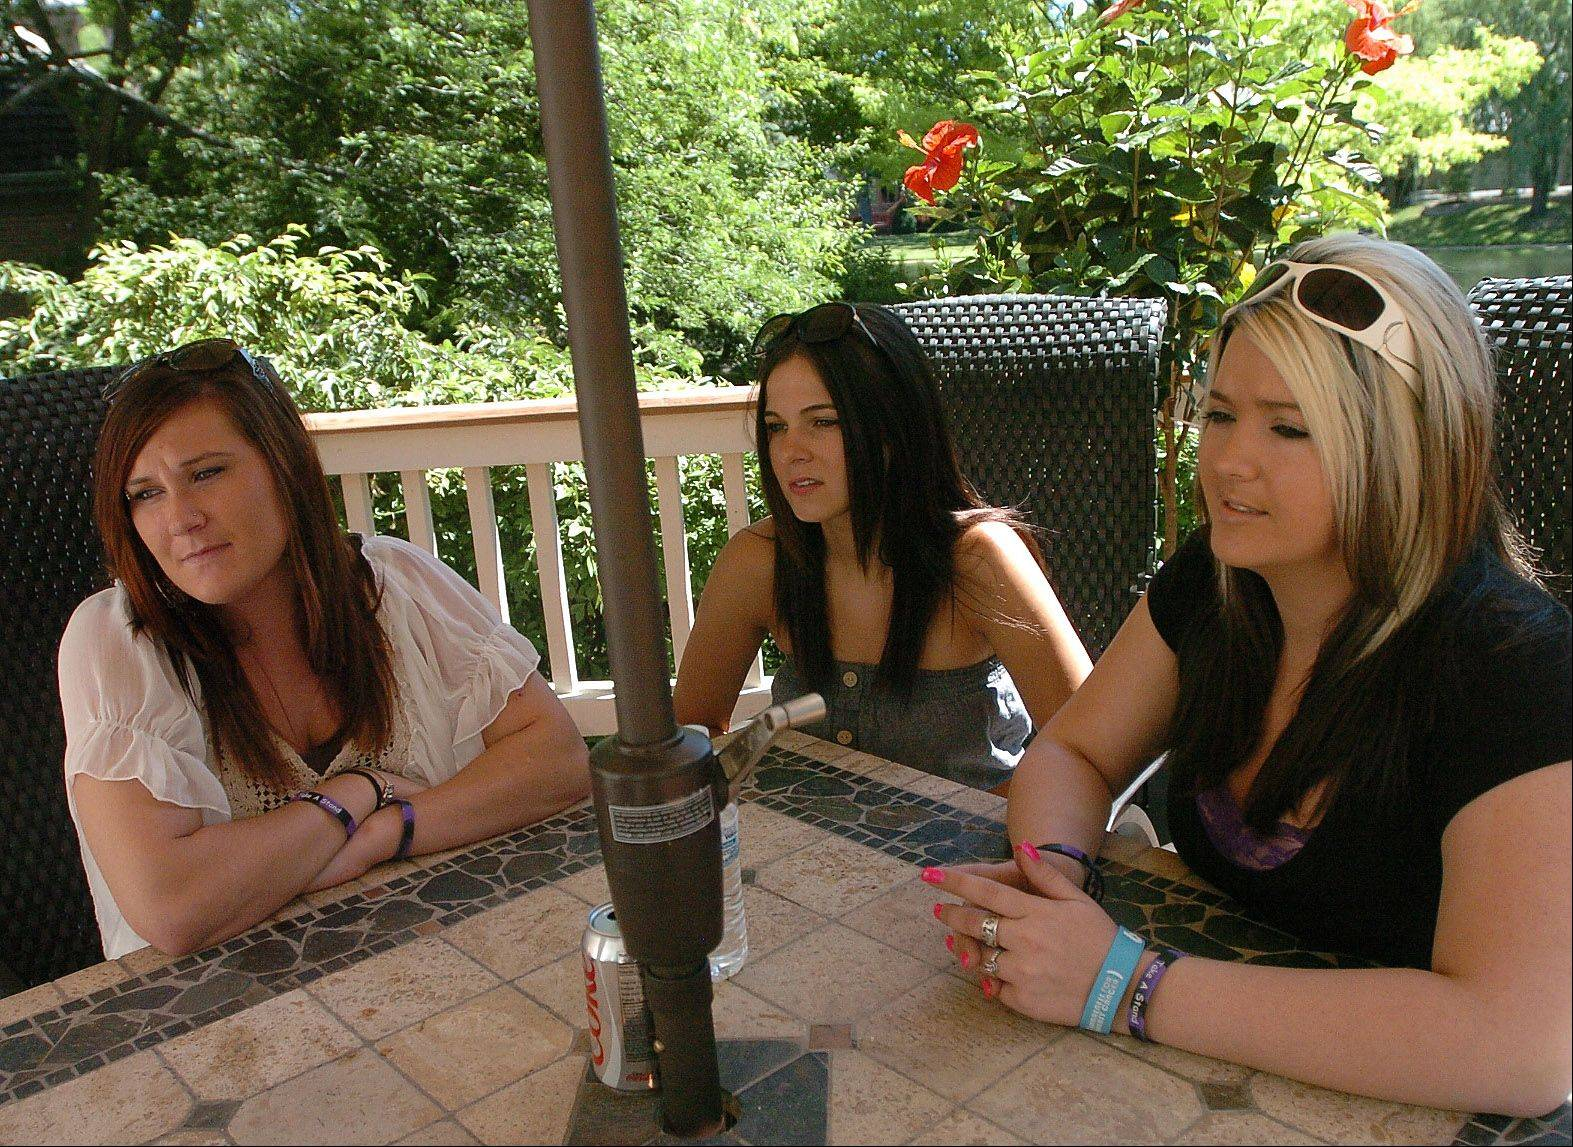 Shannon Brody, Lindsey Dulian and Heather Riley are trying to raise awareness of heroin abuse in the suburbs.